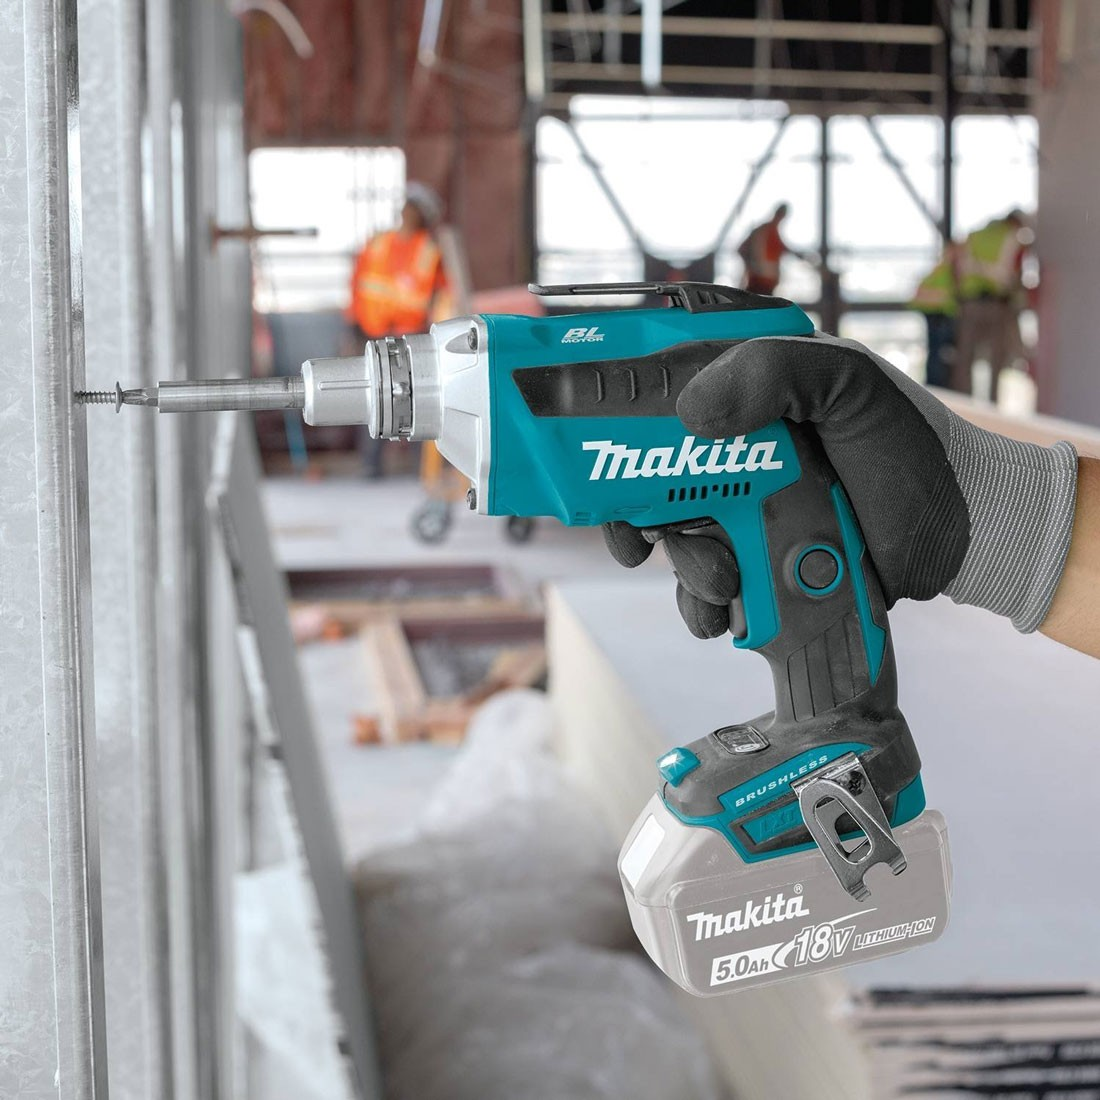 Makita DFS452Z LXT 18v Brushless Drywall Screwdriver Body Only